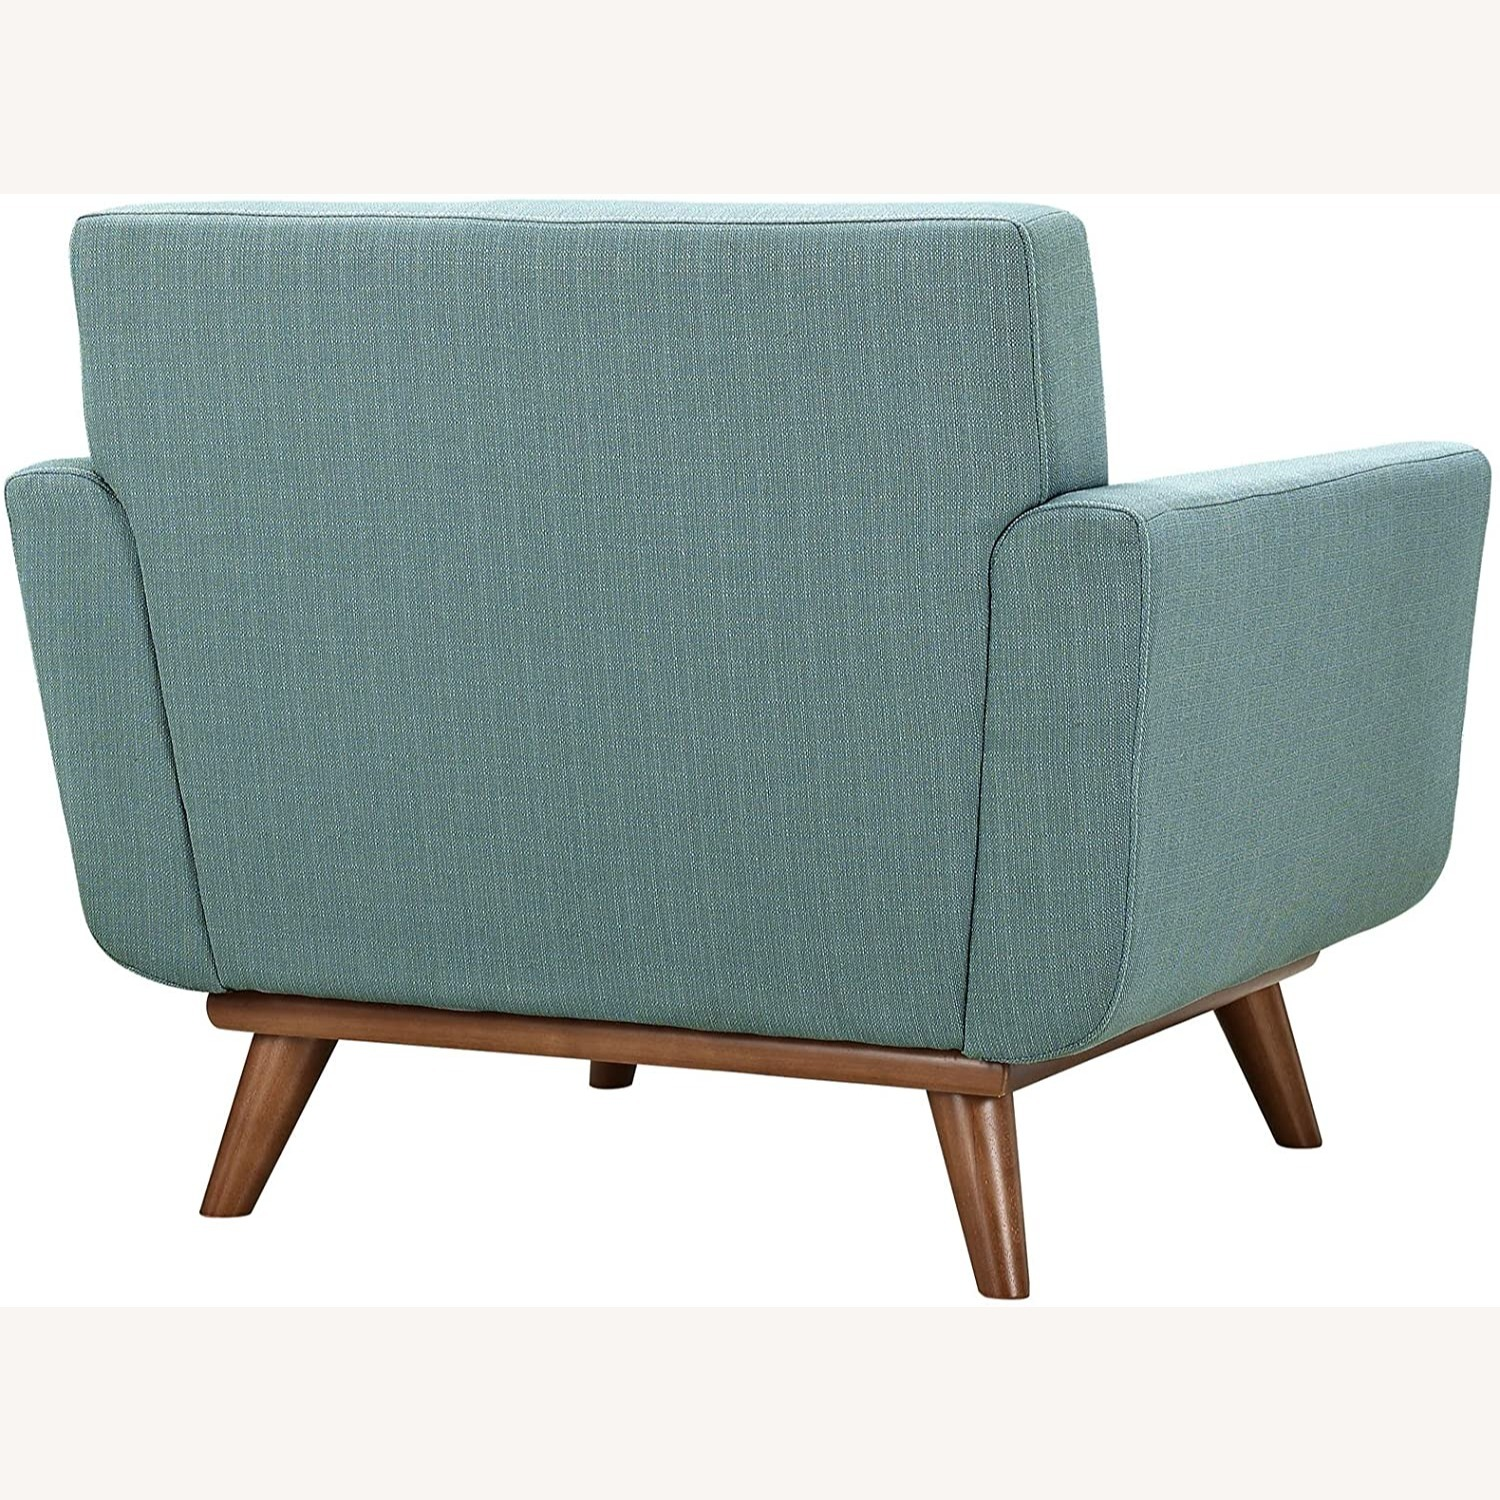 Armchair In Laguna Fabric W/ 3 Tufted Buttons - image-2